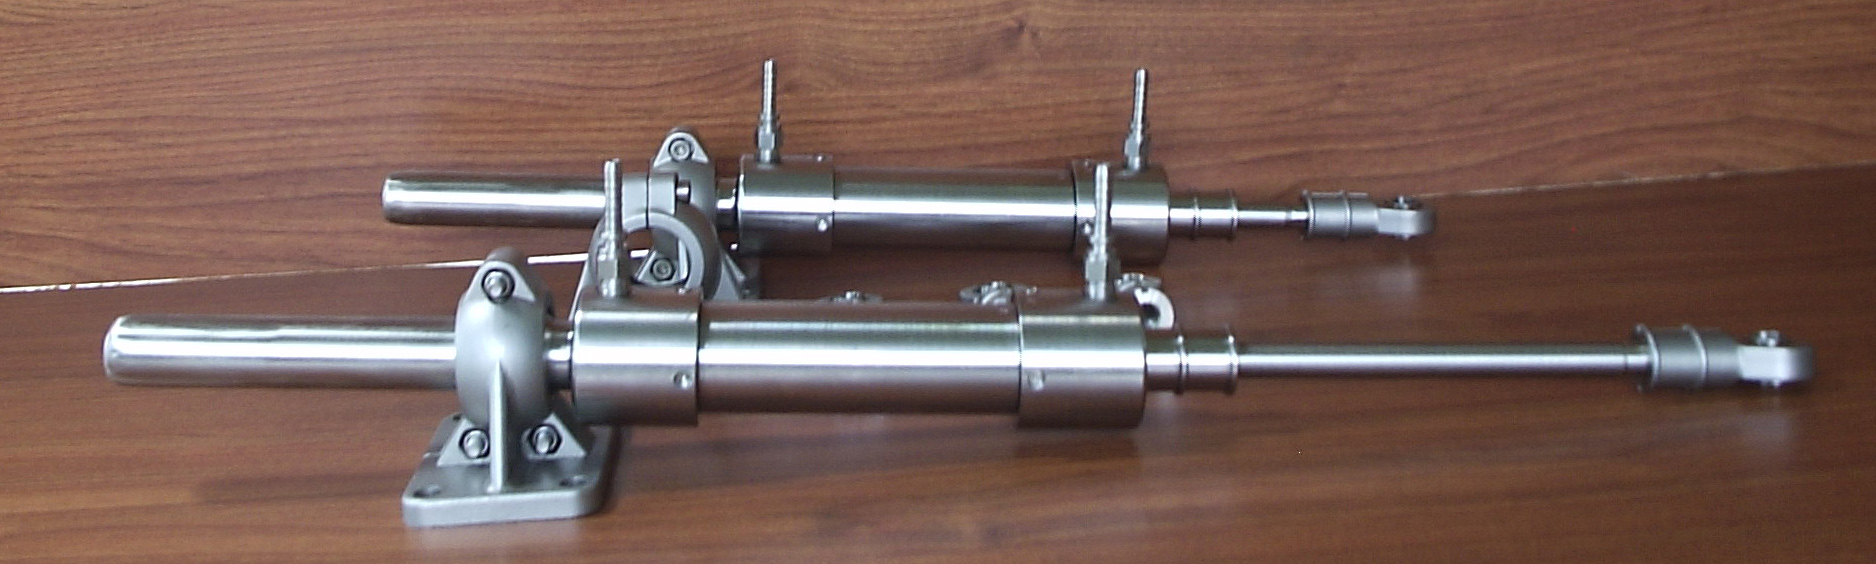 Levi Drives Hydraulic Rudder Cylinder in Stainless Steel 316 (1 4404